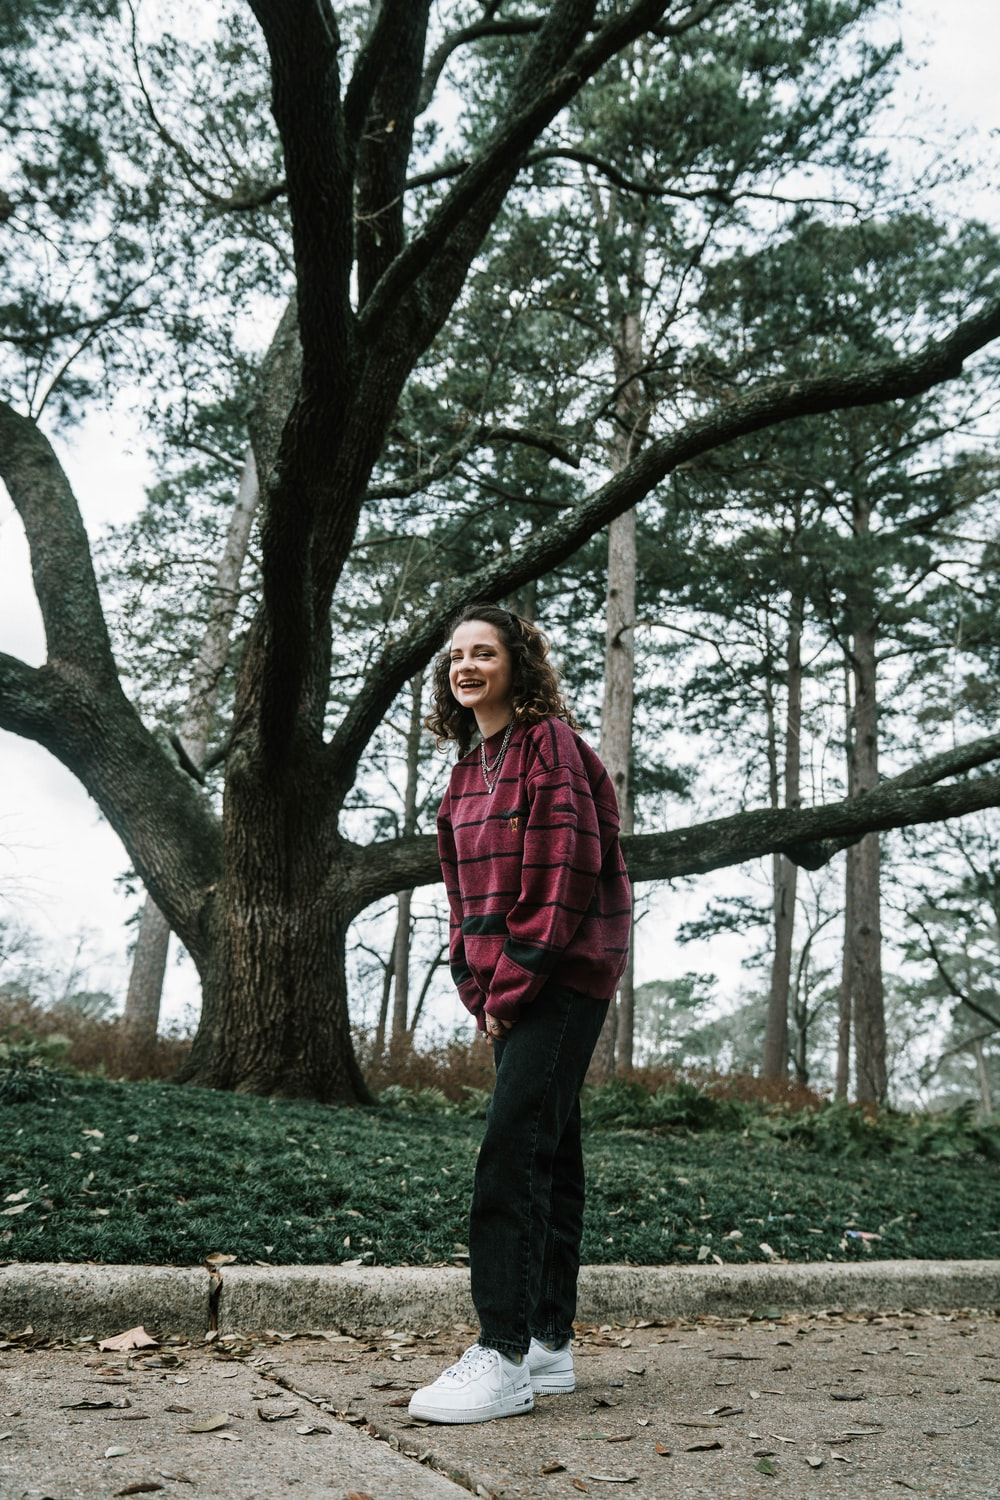 woman in red and black plaid dress shirt standing near brown tree during daytime